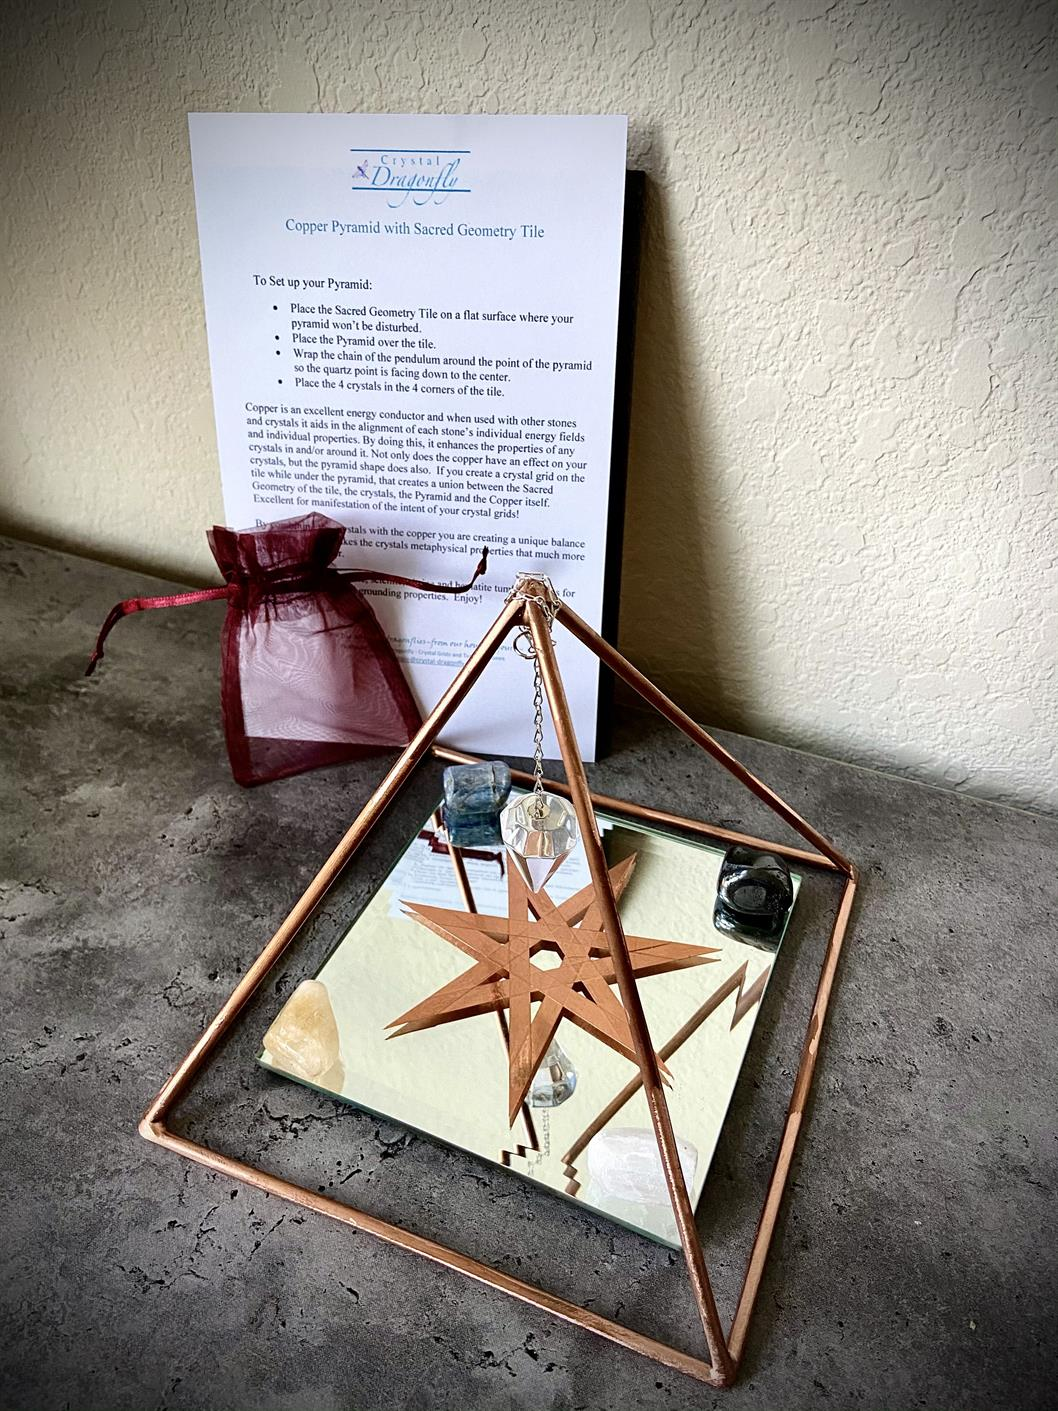 Copper Pyramid Collection, Quartz Pendulum, Sacred Geometry Tile, & Crystals; FB1640